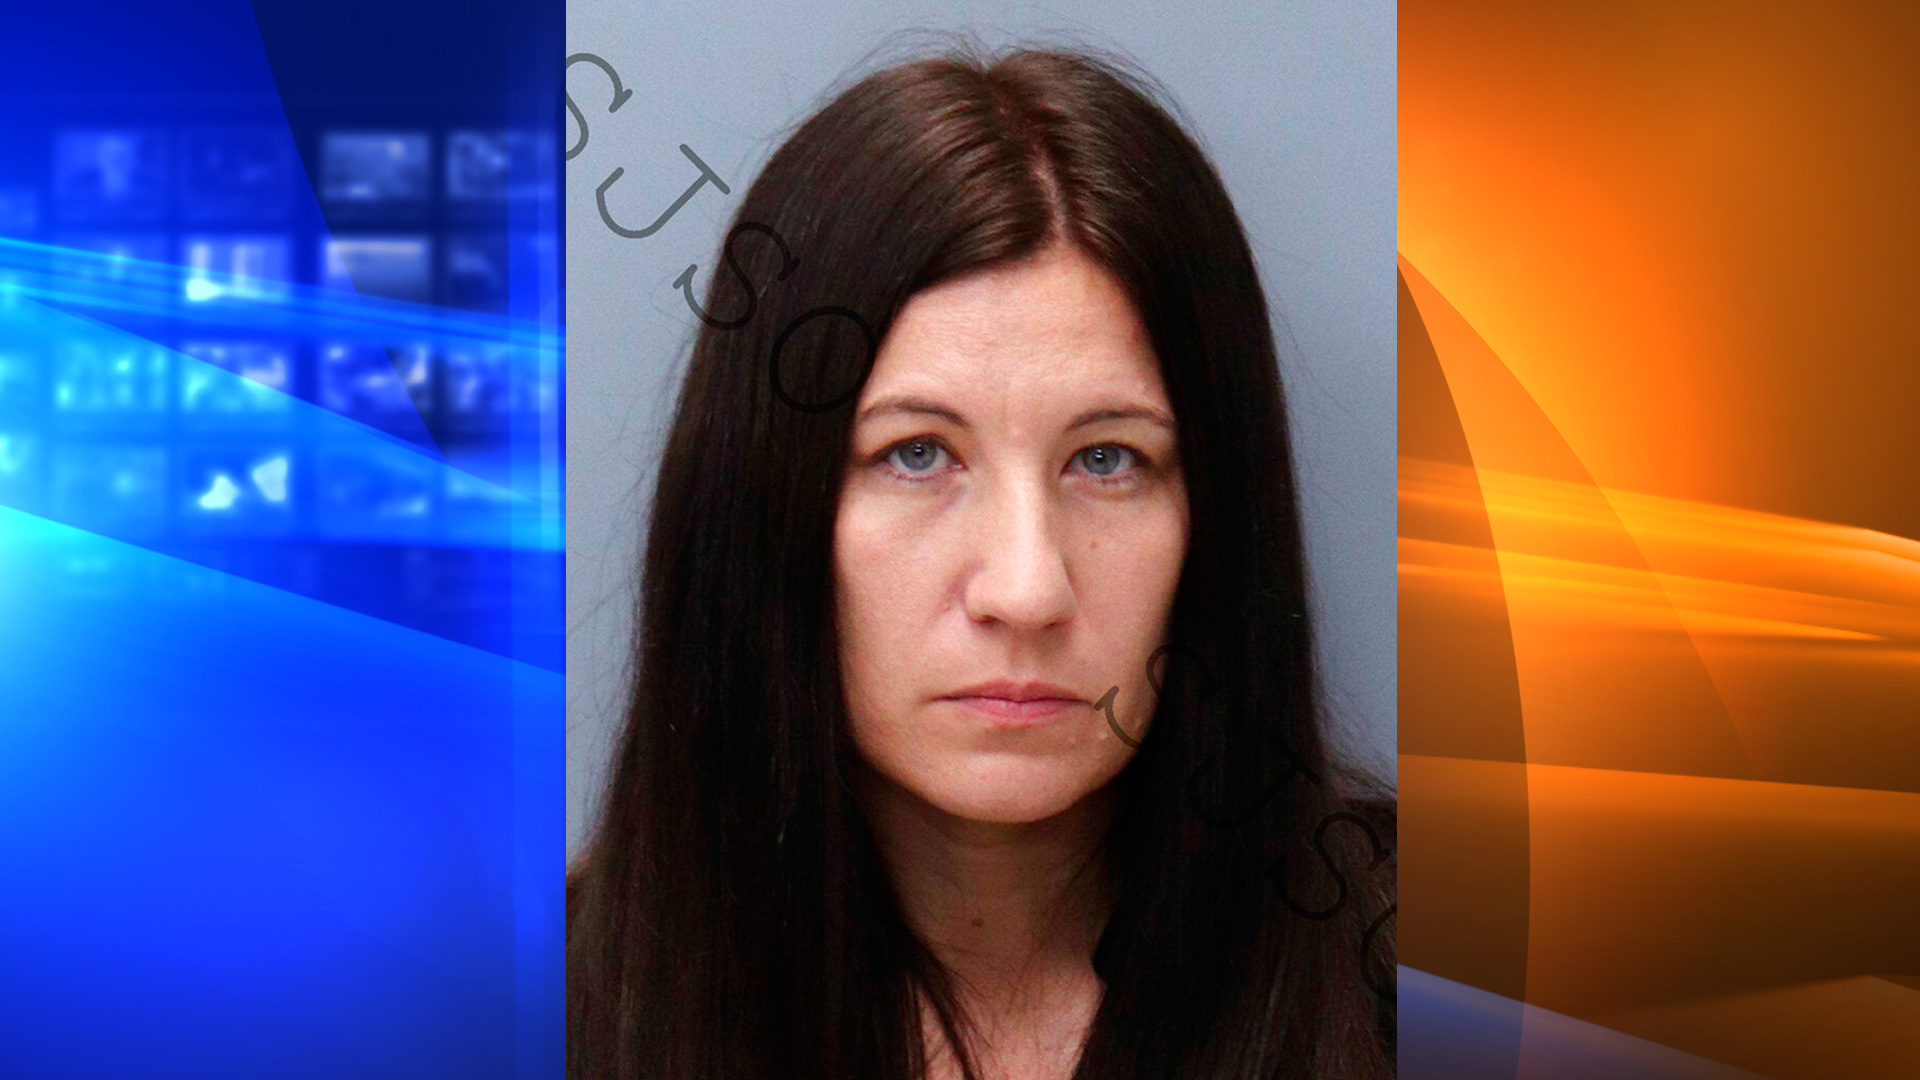 This photo provided by the St. Johns County Sheriff's Office shows Crystal Lane Smith.